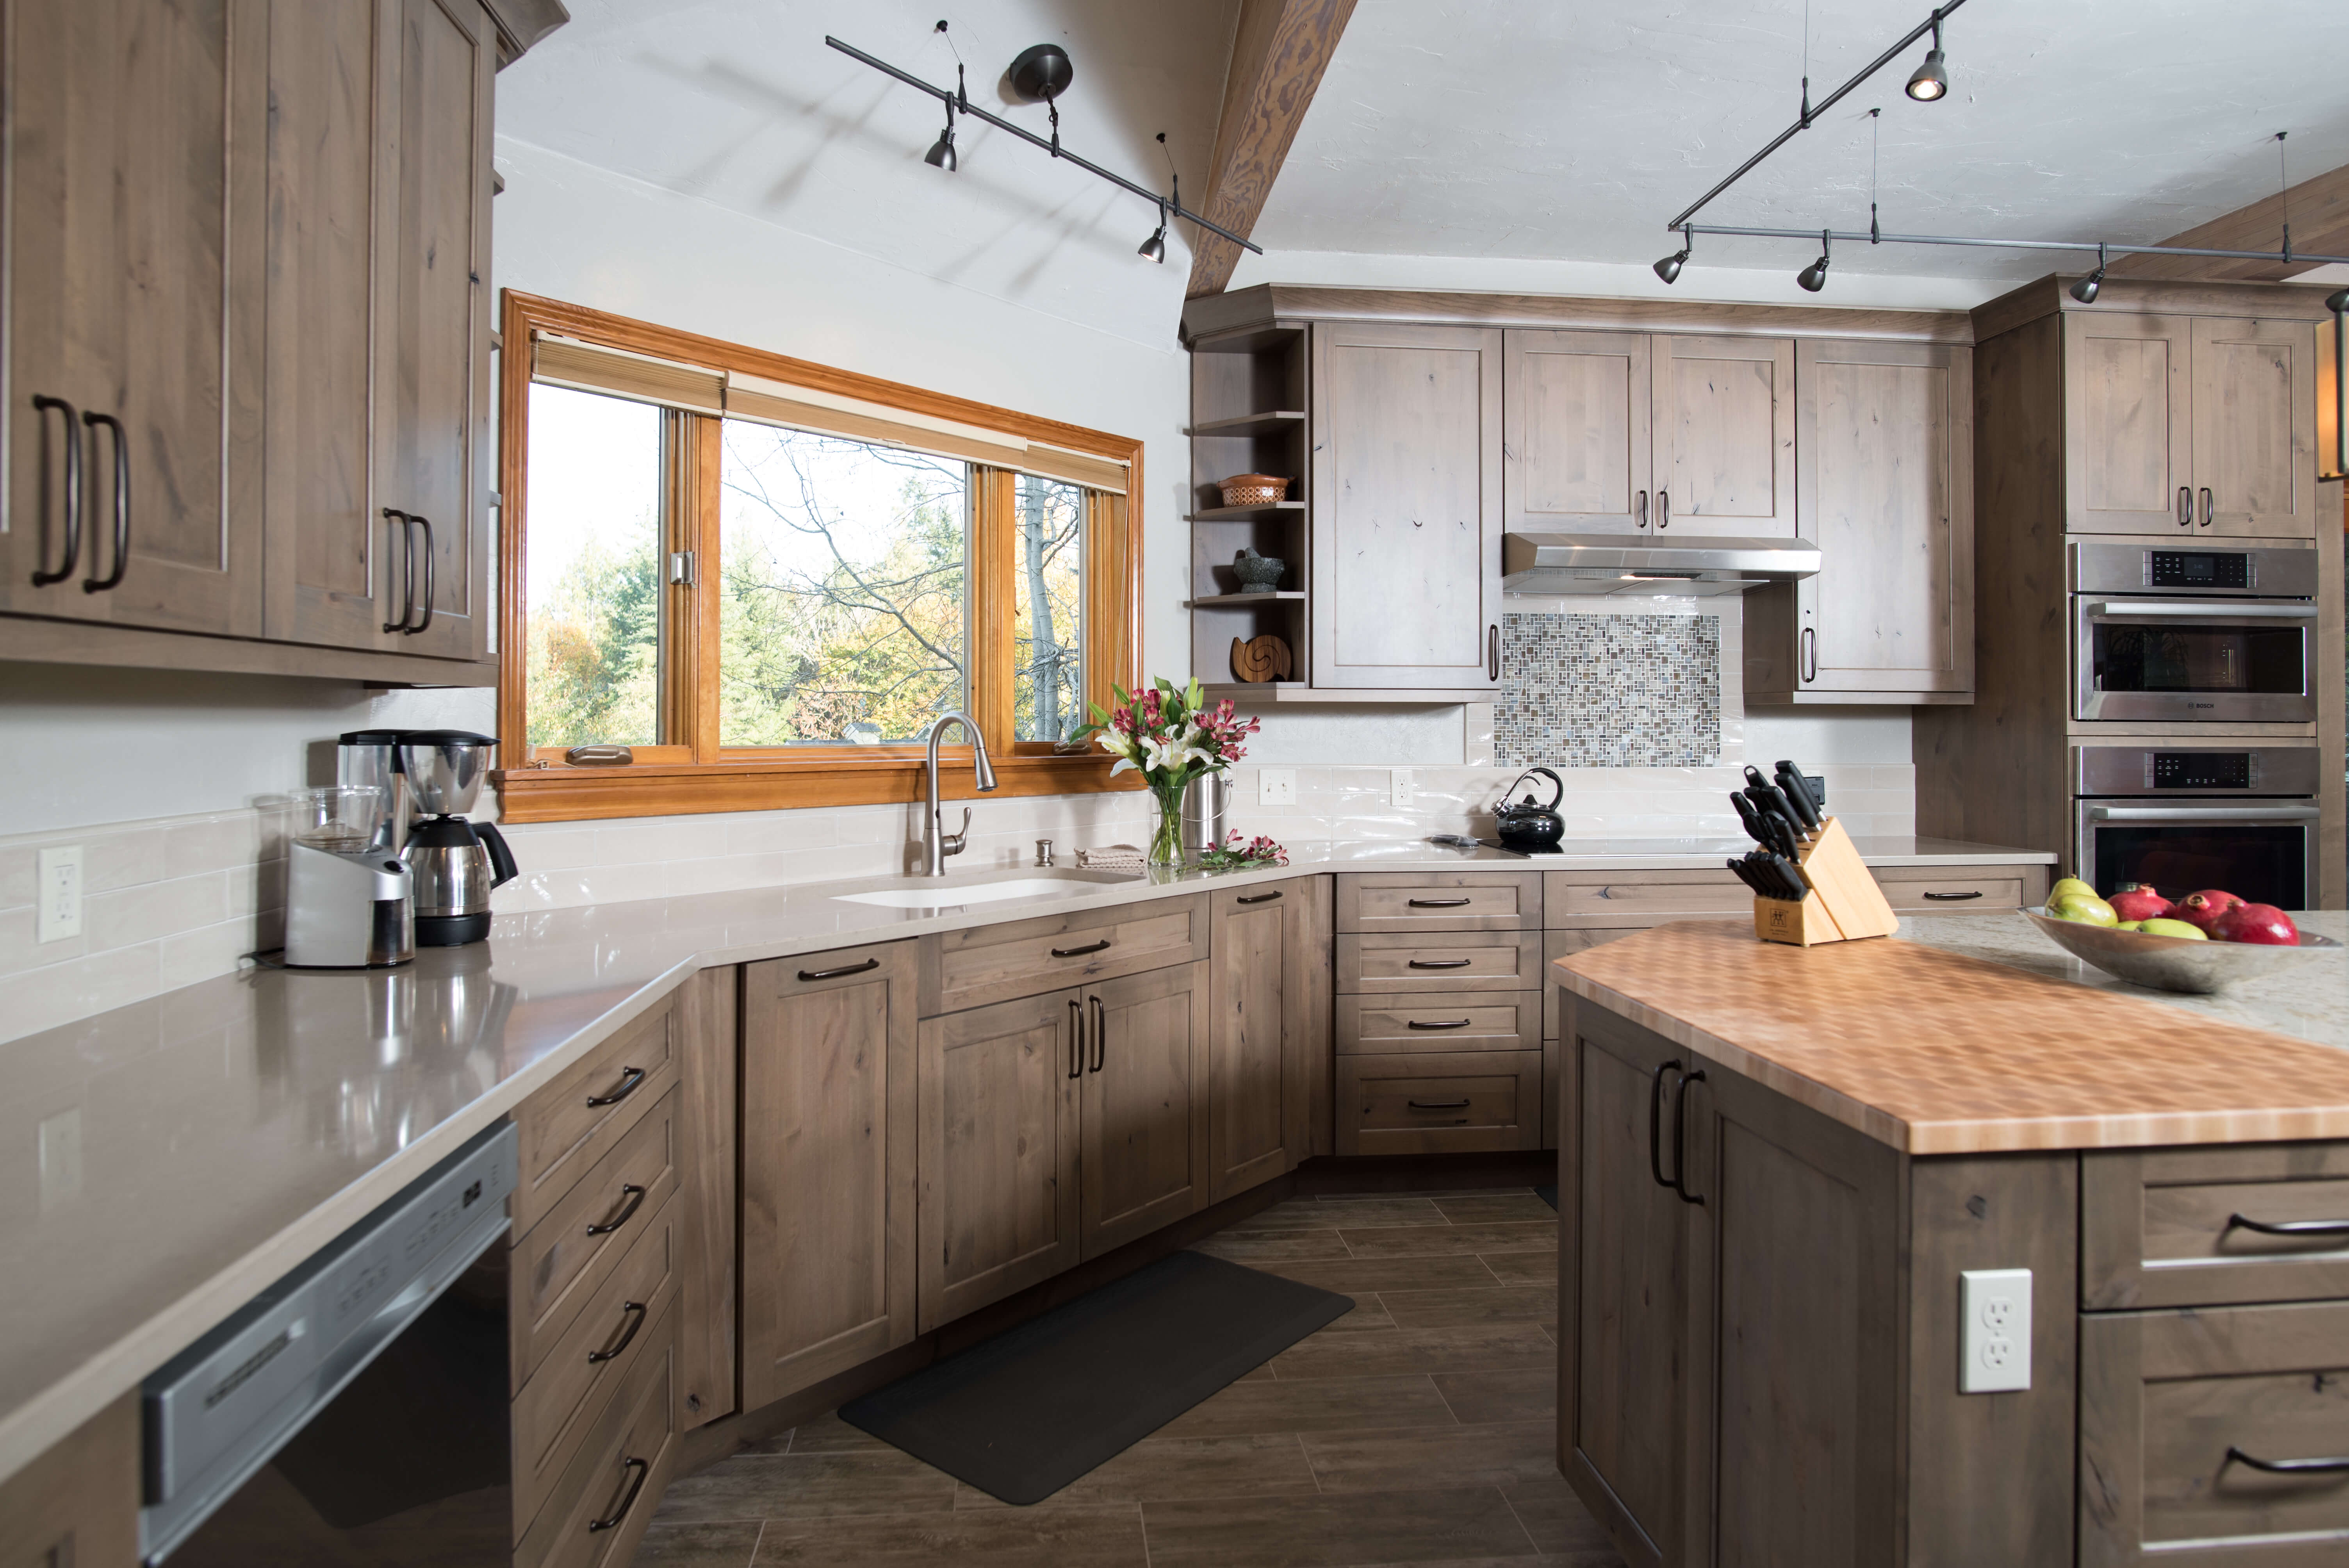 Dura Supreme's Highland door style in Knotty Alder with Cashew low sheen stain. Design by Molly McCabe – A Kitchen That Works, Seattle, WA